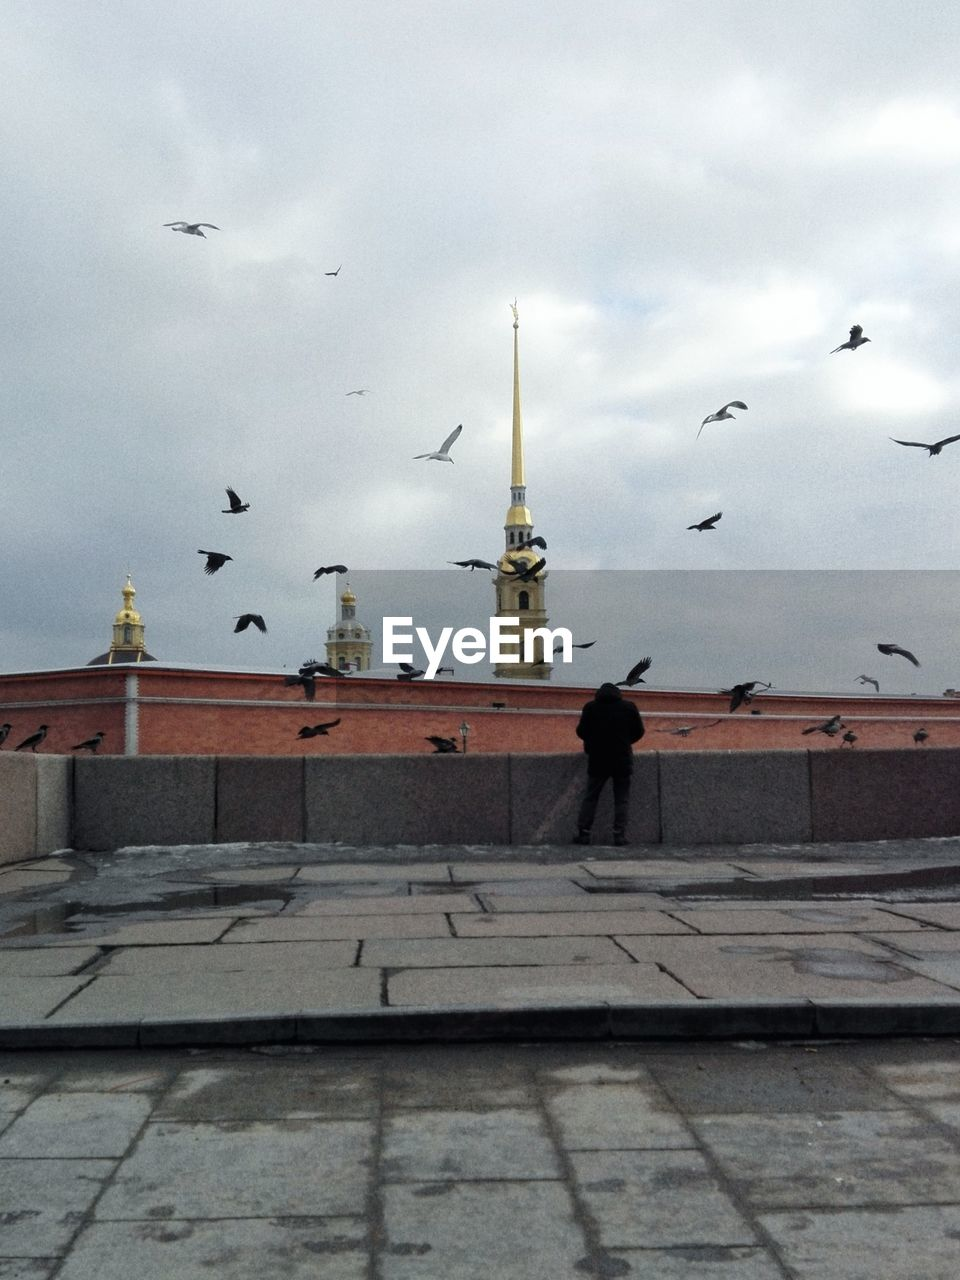 VIEW OF SEAGULL FLYING OVER BUILDING